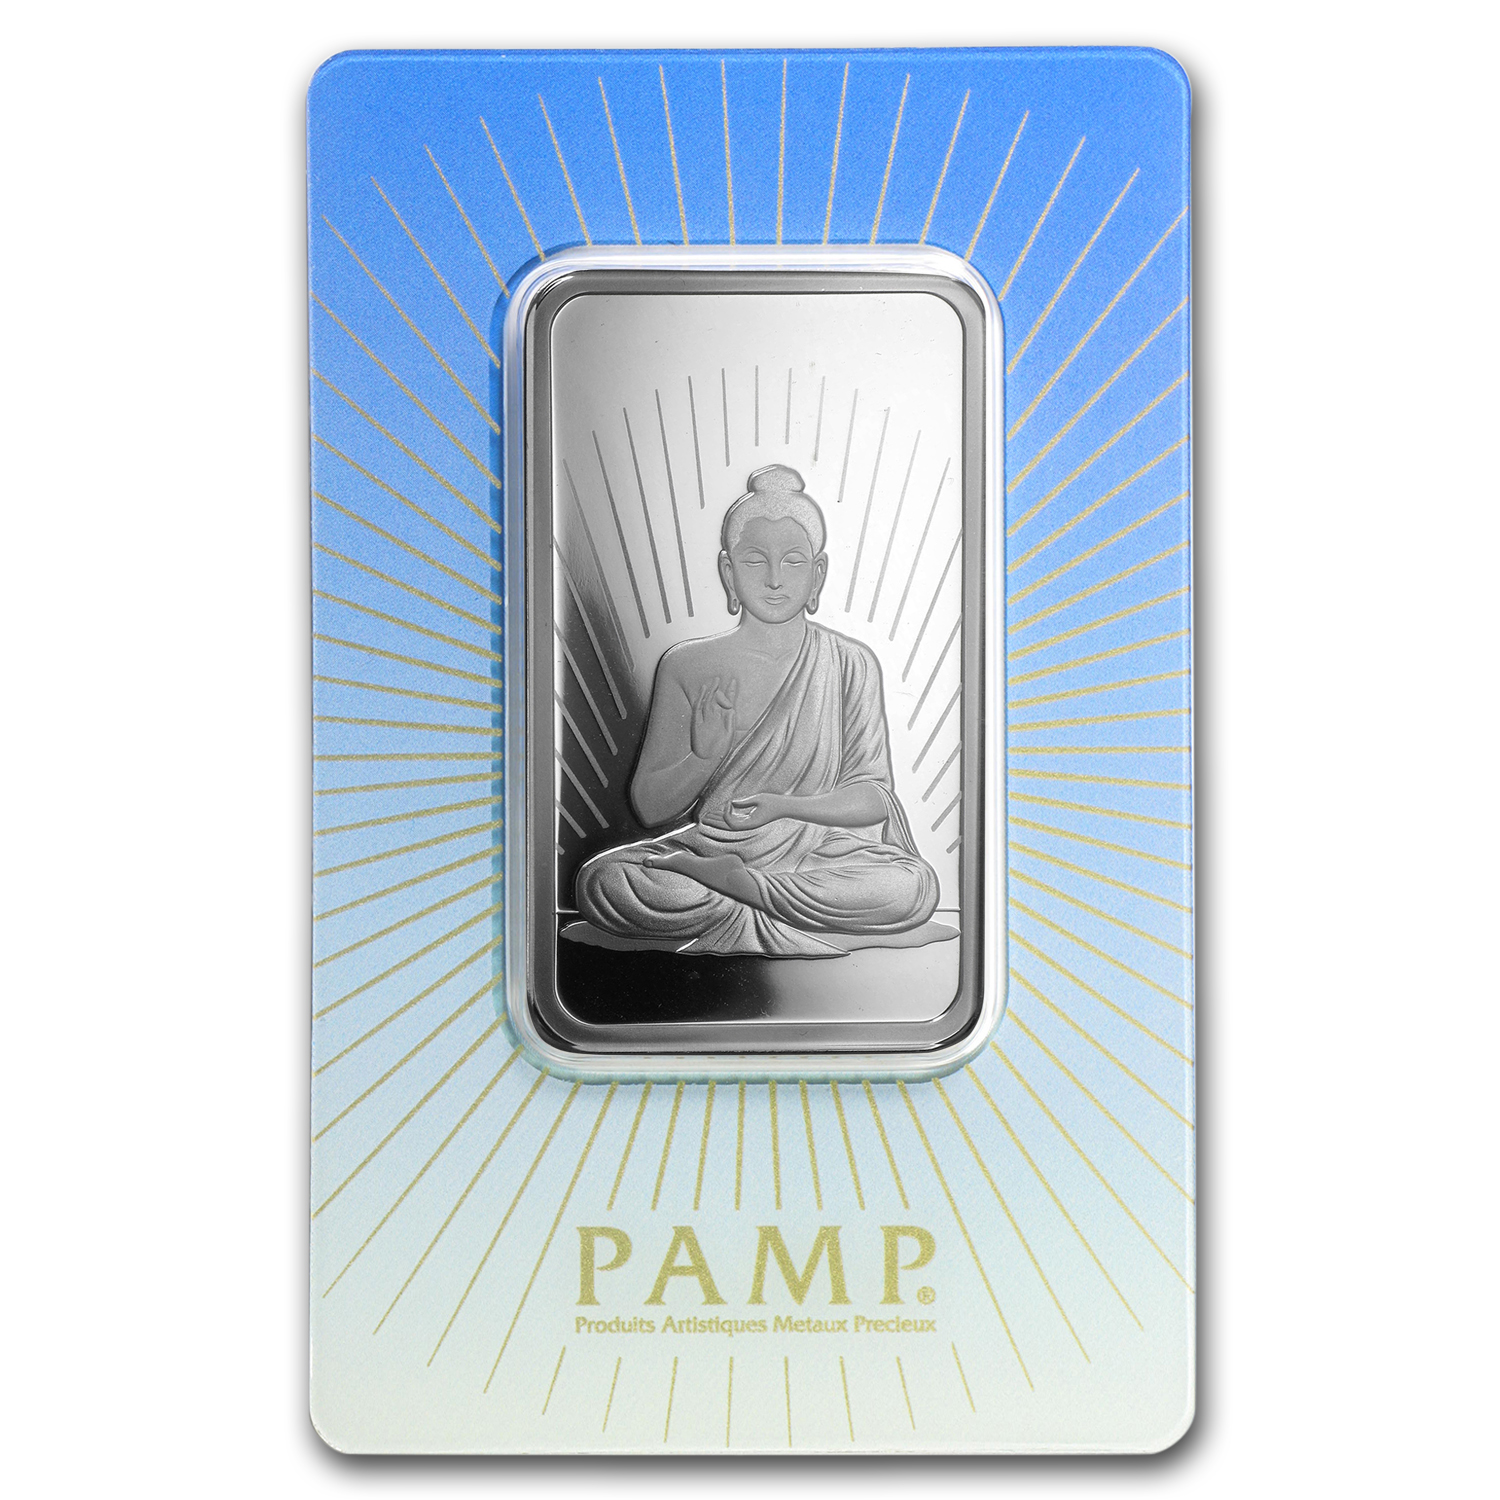 1 oz Silver Bar - PAMP Suisse Religious Series (Buddha)